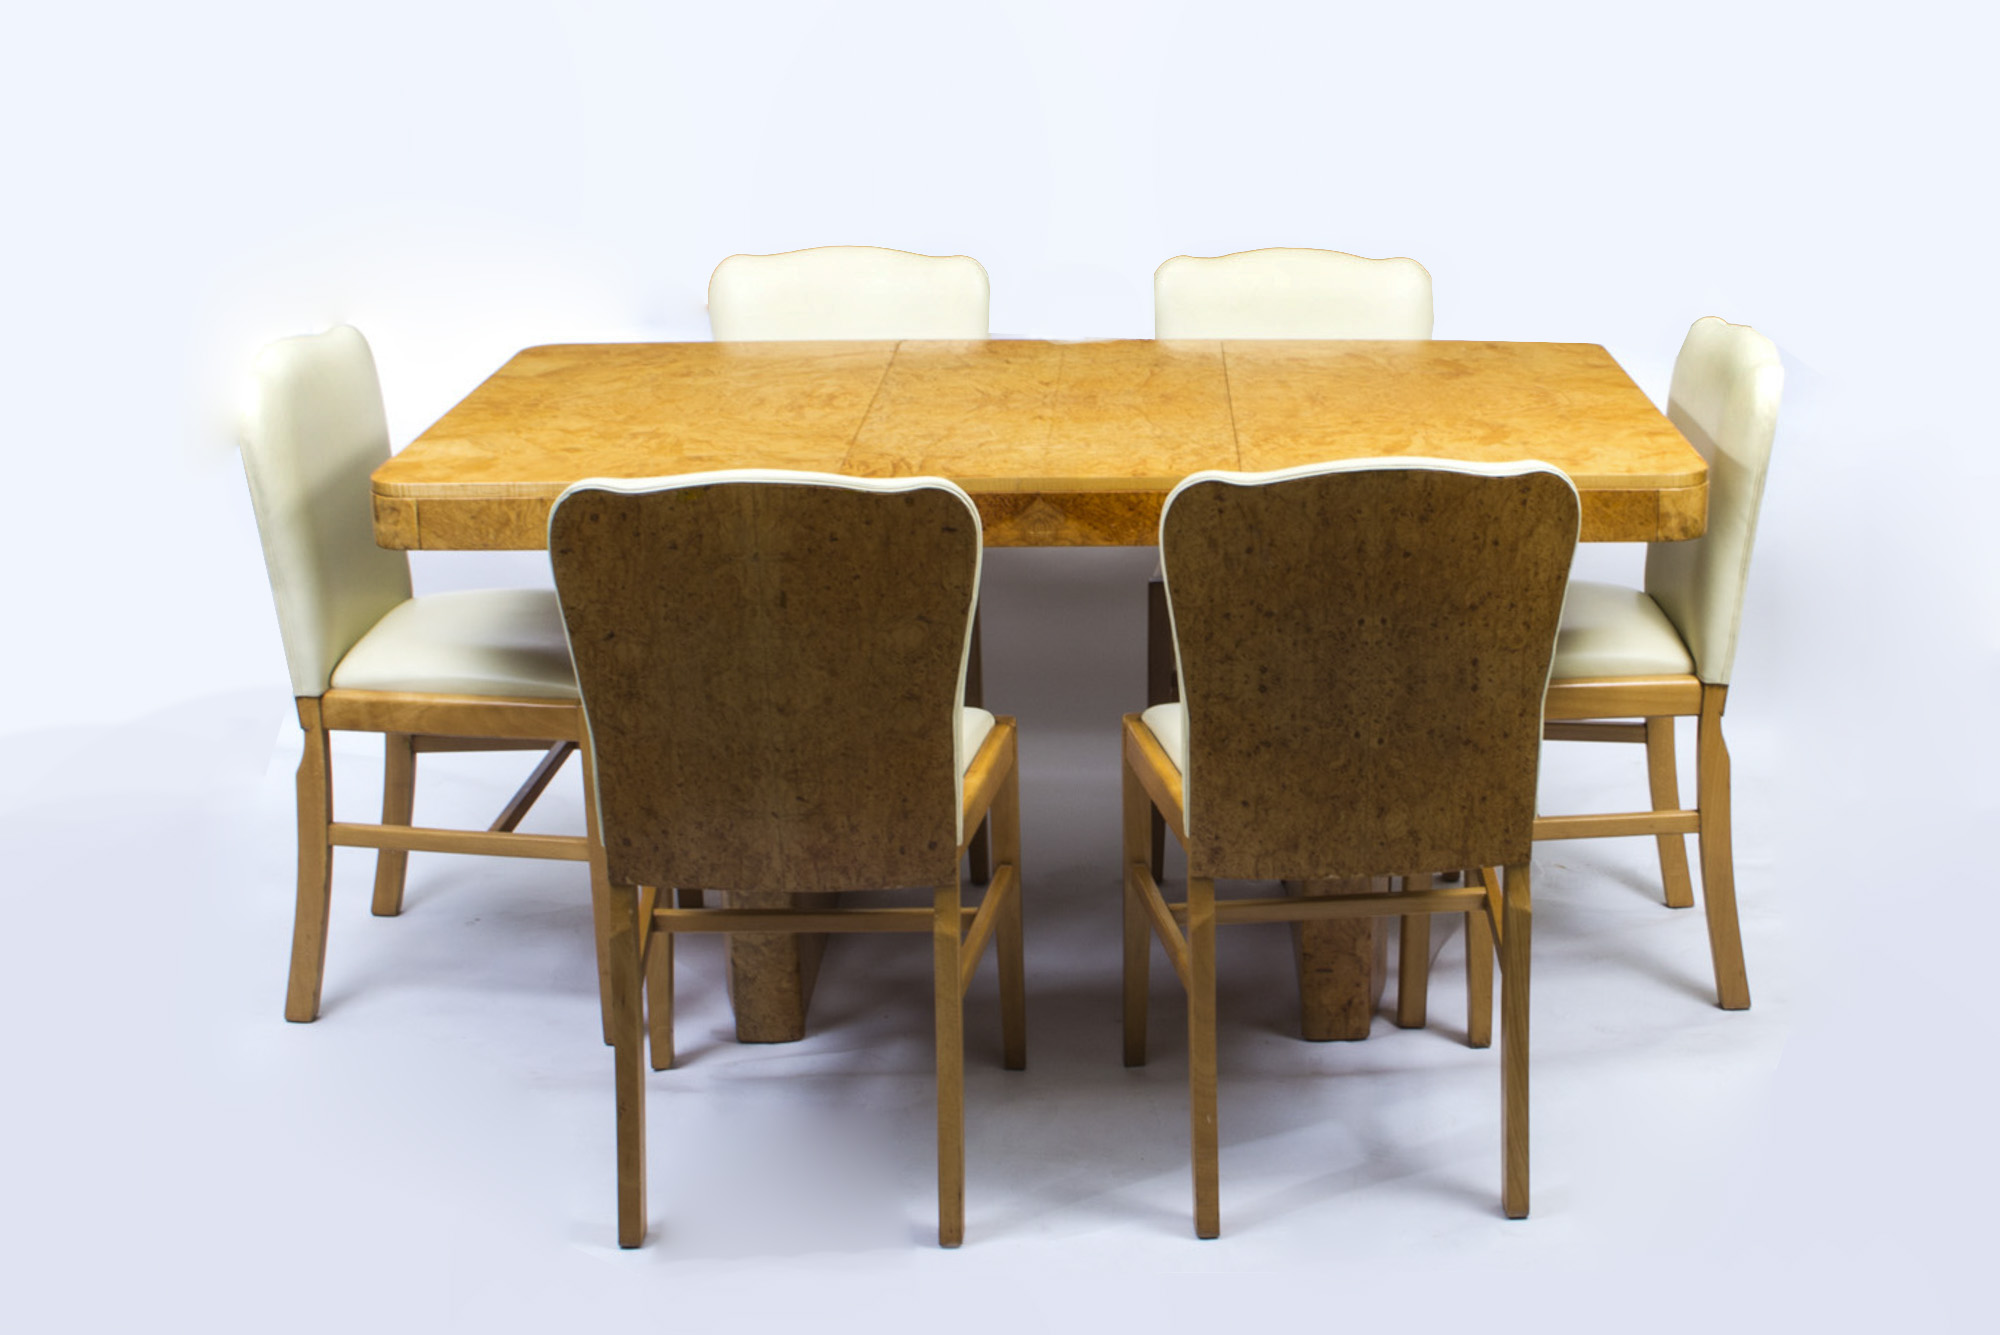 Antique art deco dining table chair set art deco for Dining table and 6 chairs